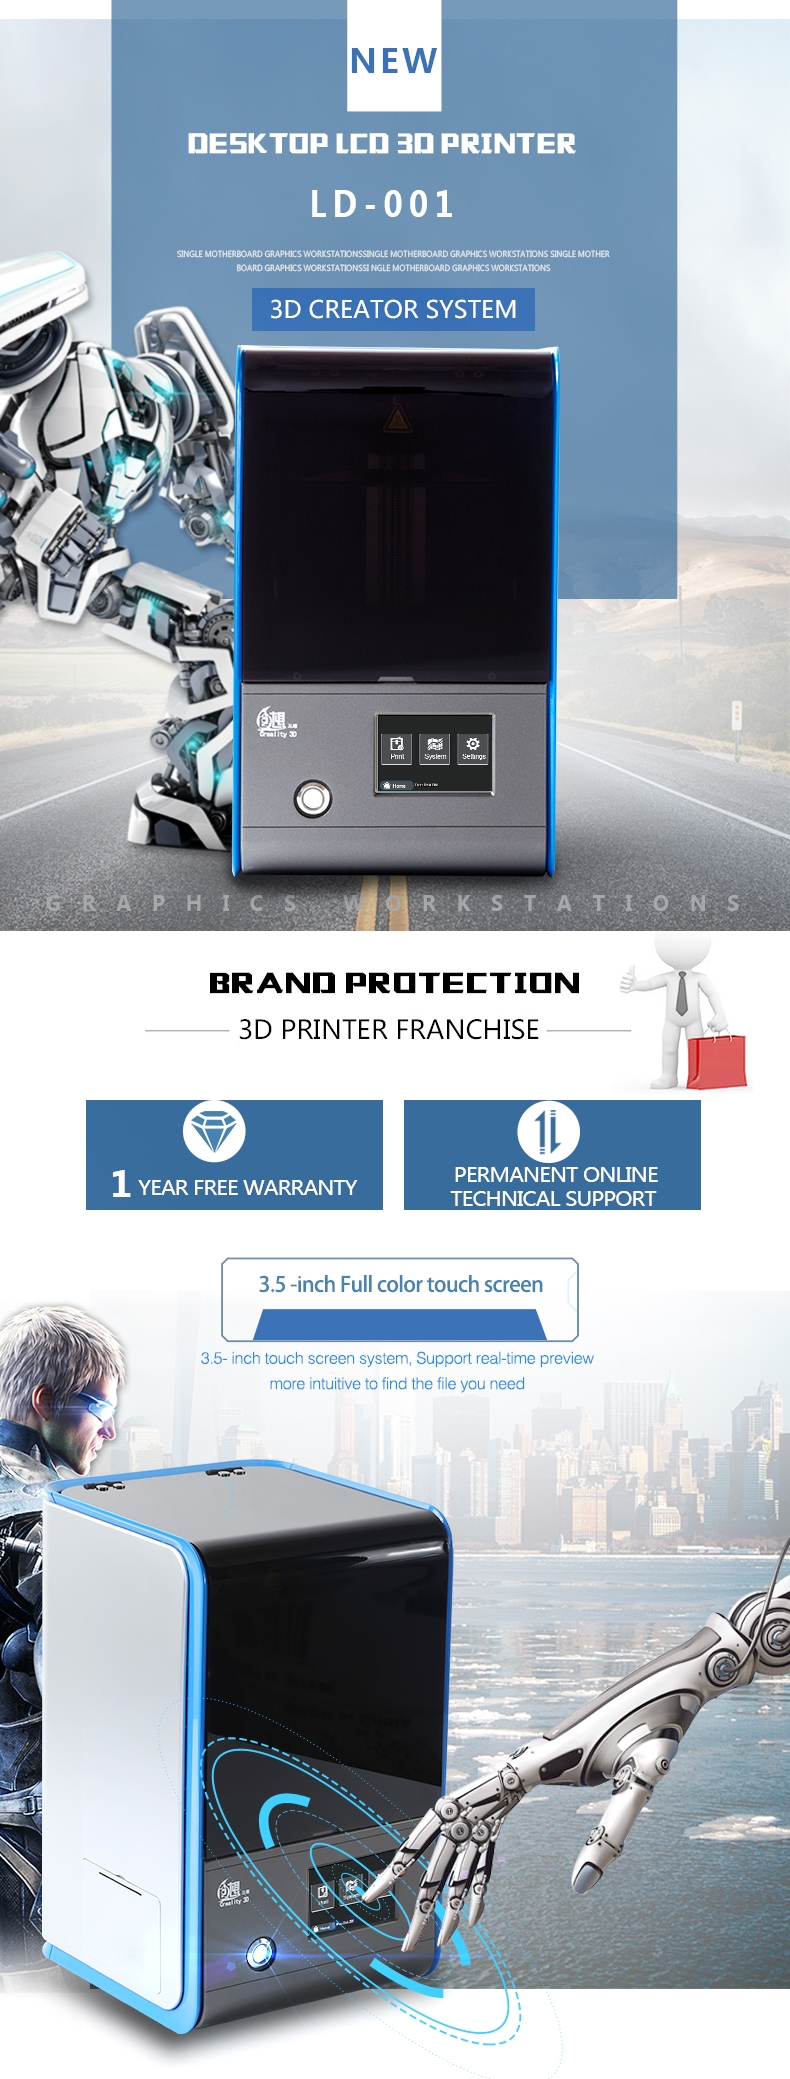 Creality 3D® LD-001 Desktop LCD Light-curing 3D Printer 120x70x120mm Molding Size With 3.5 Inch Full Color Touch Screen/Support WIFI Connect Off-line Printing/Automatic Leveling